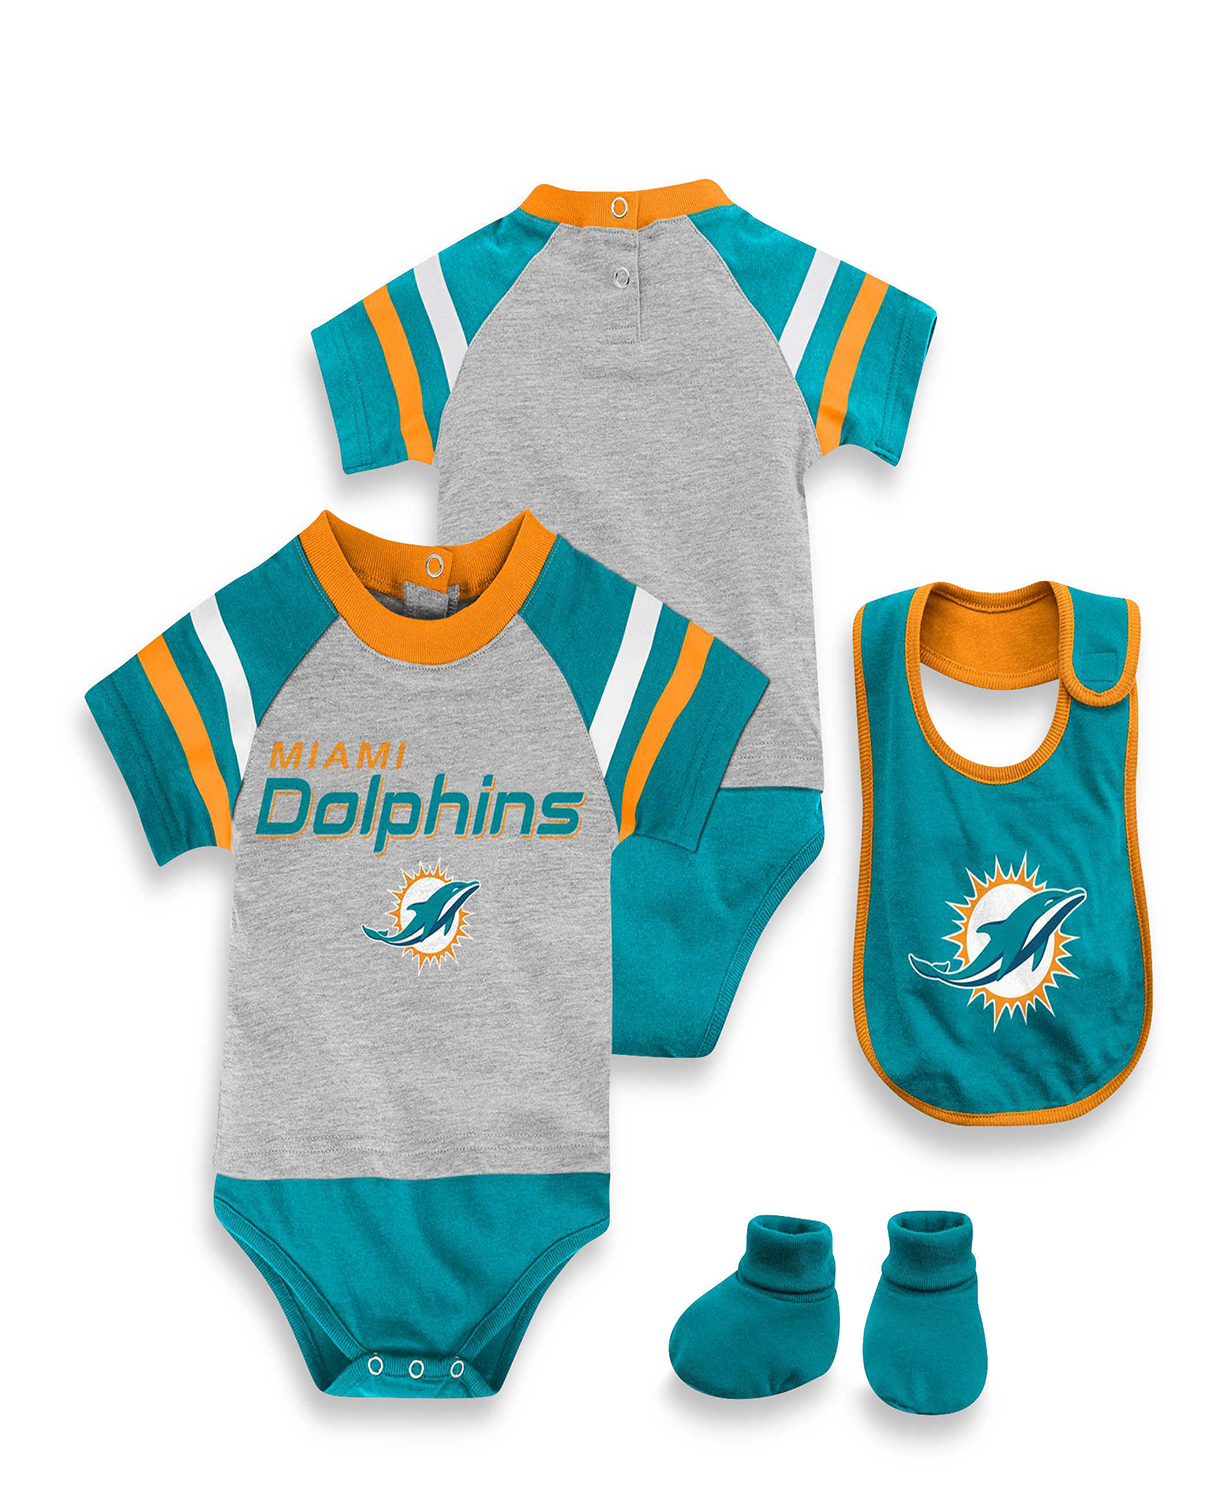 Baby Clothes Png (+).